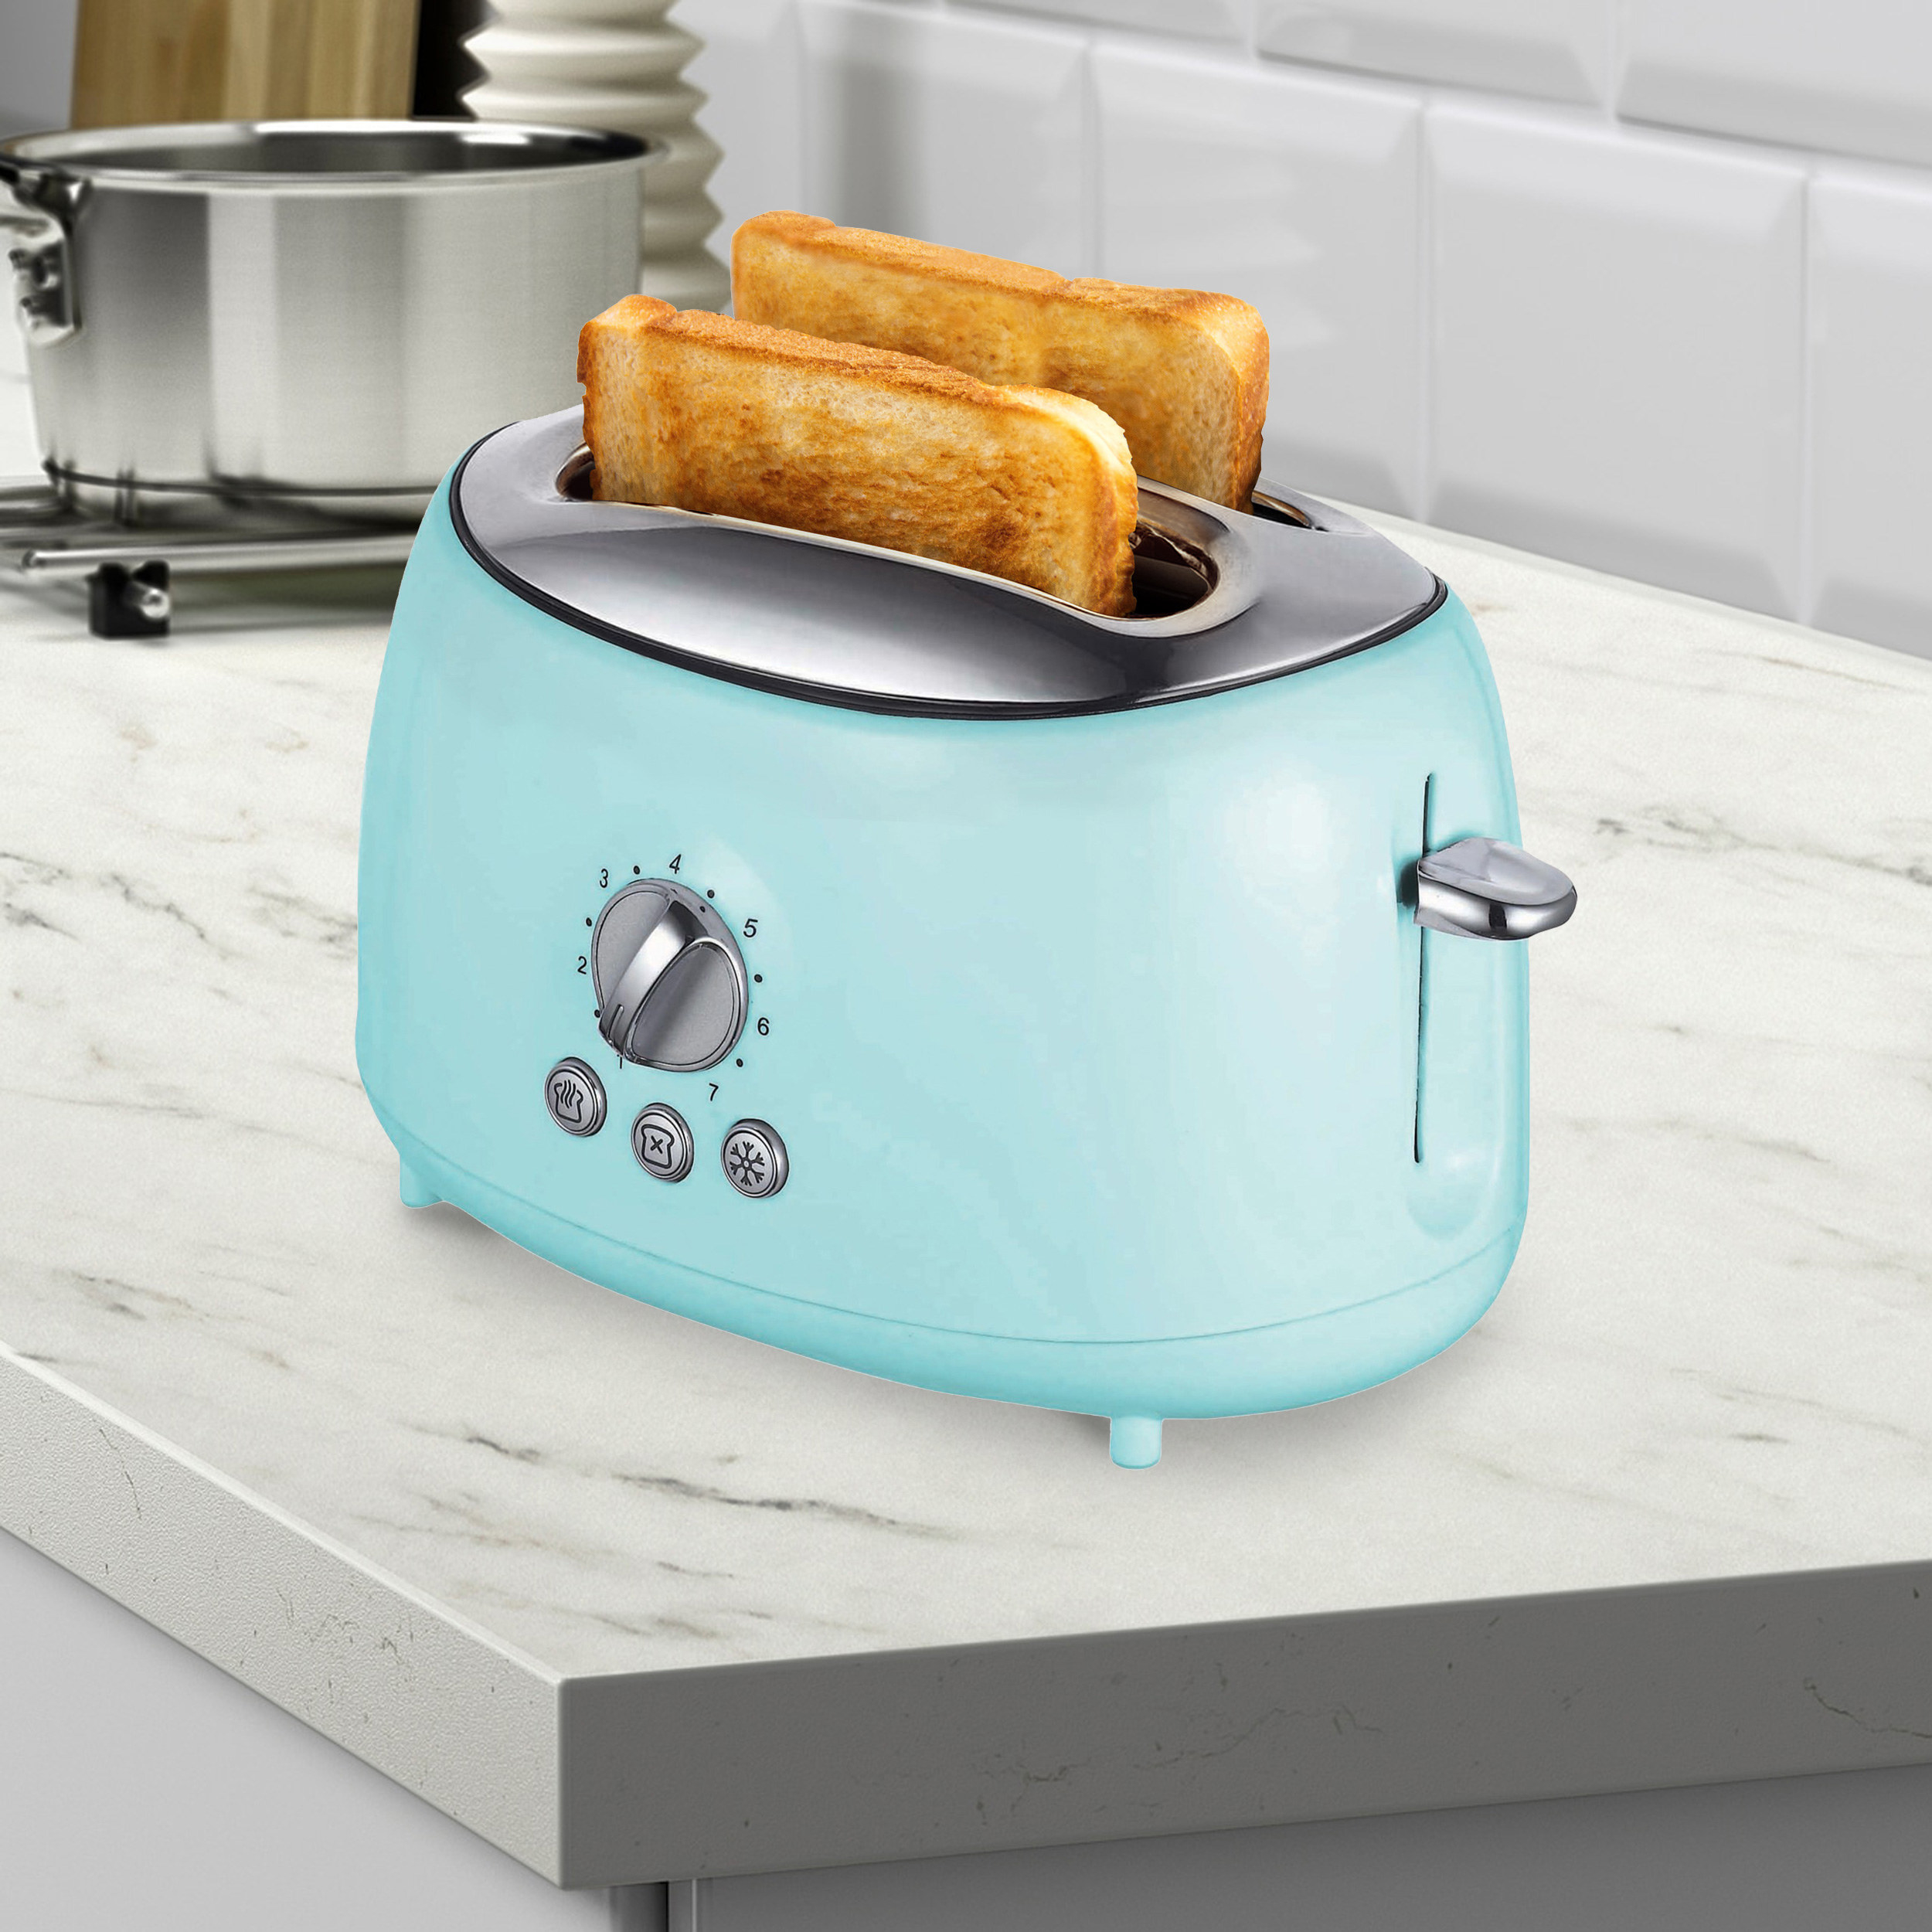 Robins egg blue two-slot toaster